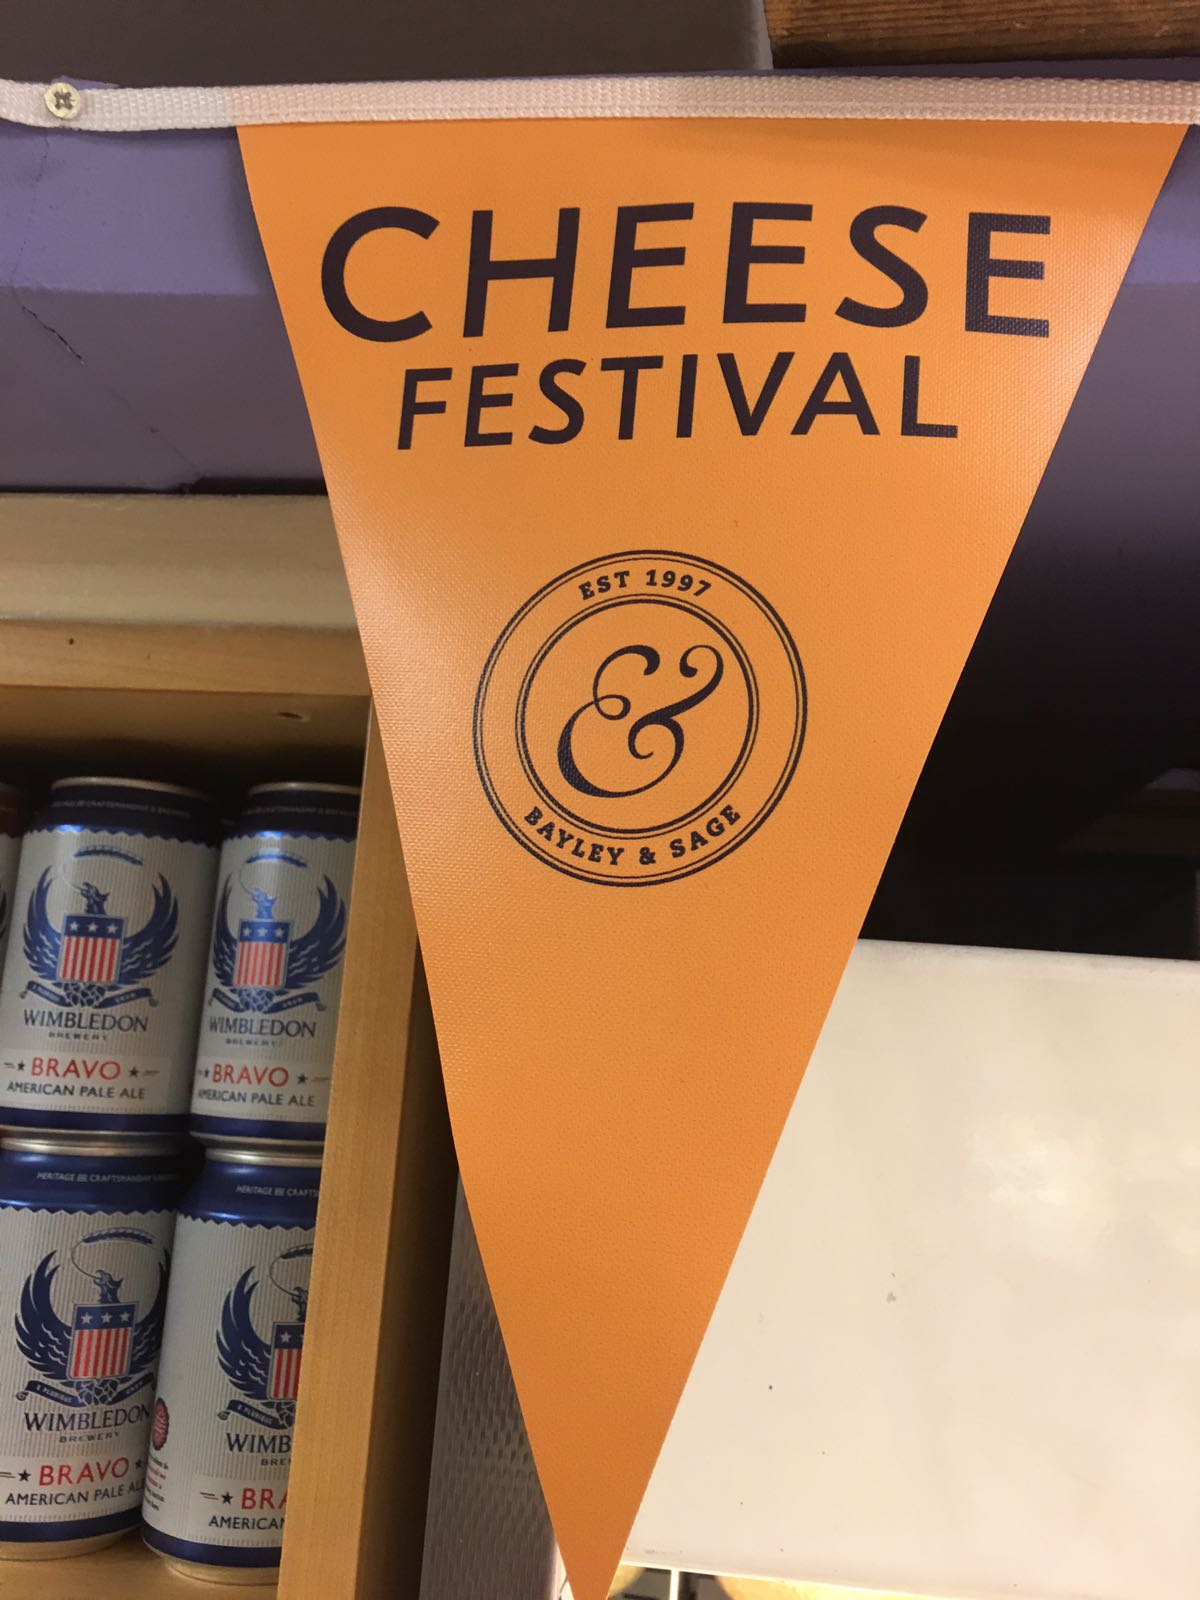 British Cheese Festival Tasting Schedule